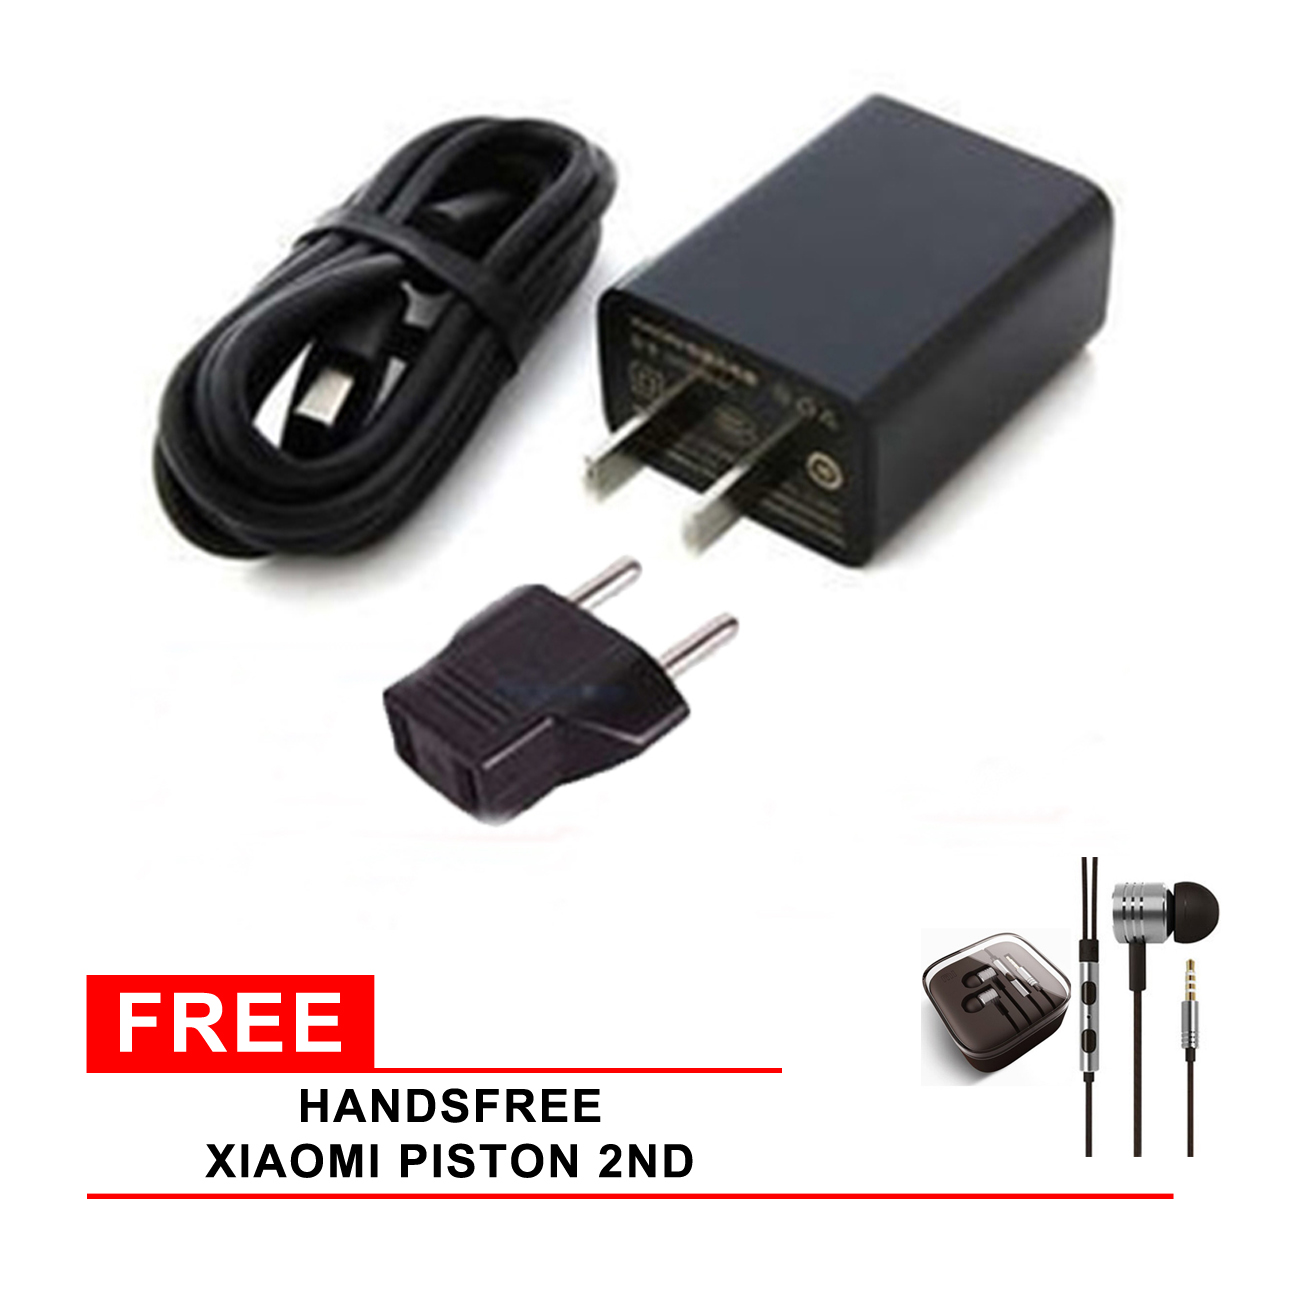 Xiaomi Travel Charger Adapter 2A Fast Charging + GRATIS Handsfree Xiaomi Piston 2nd .